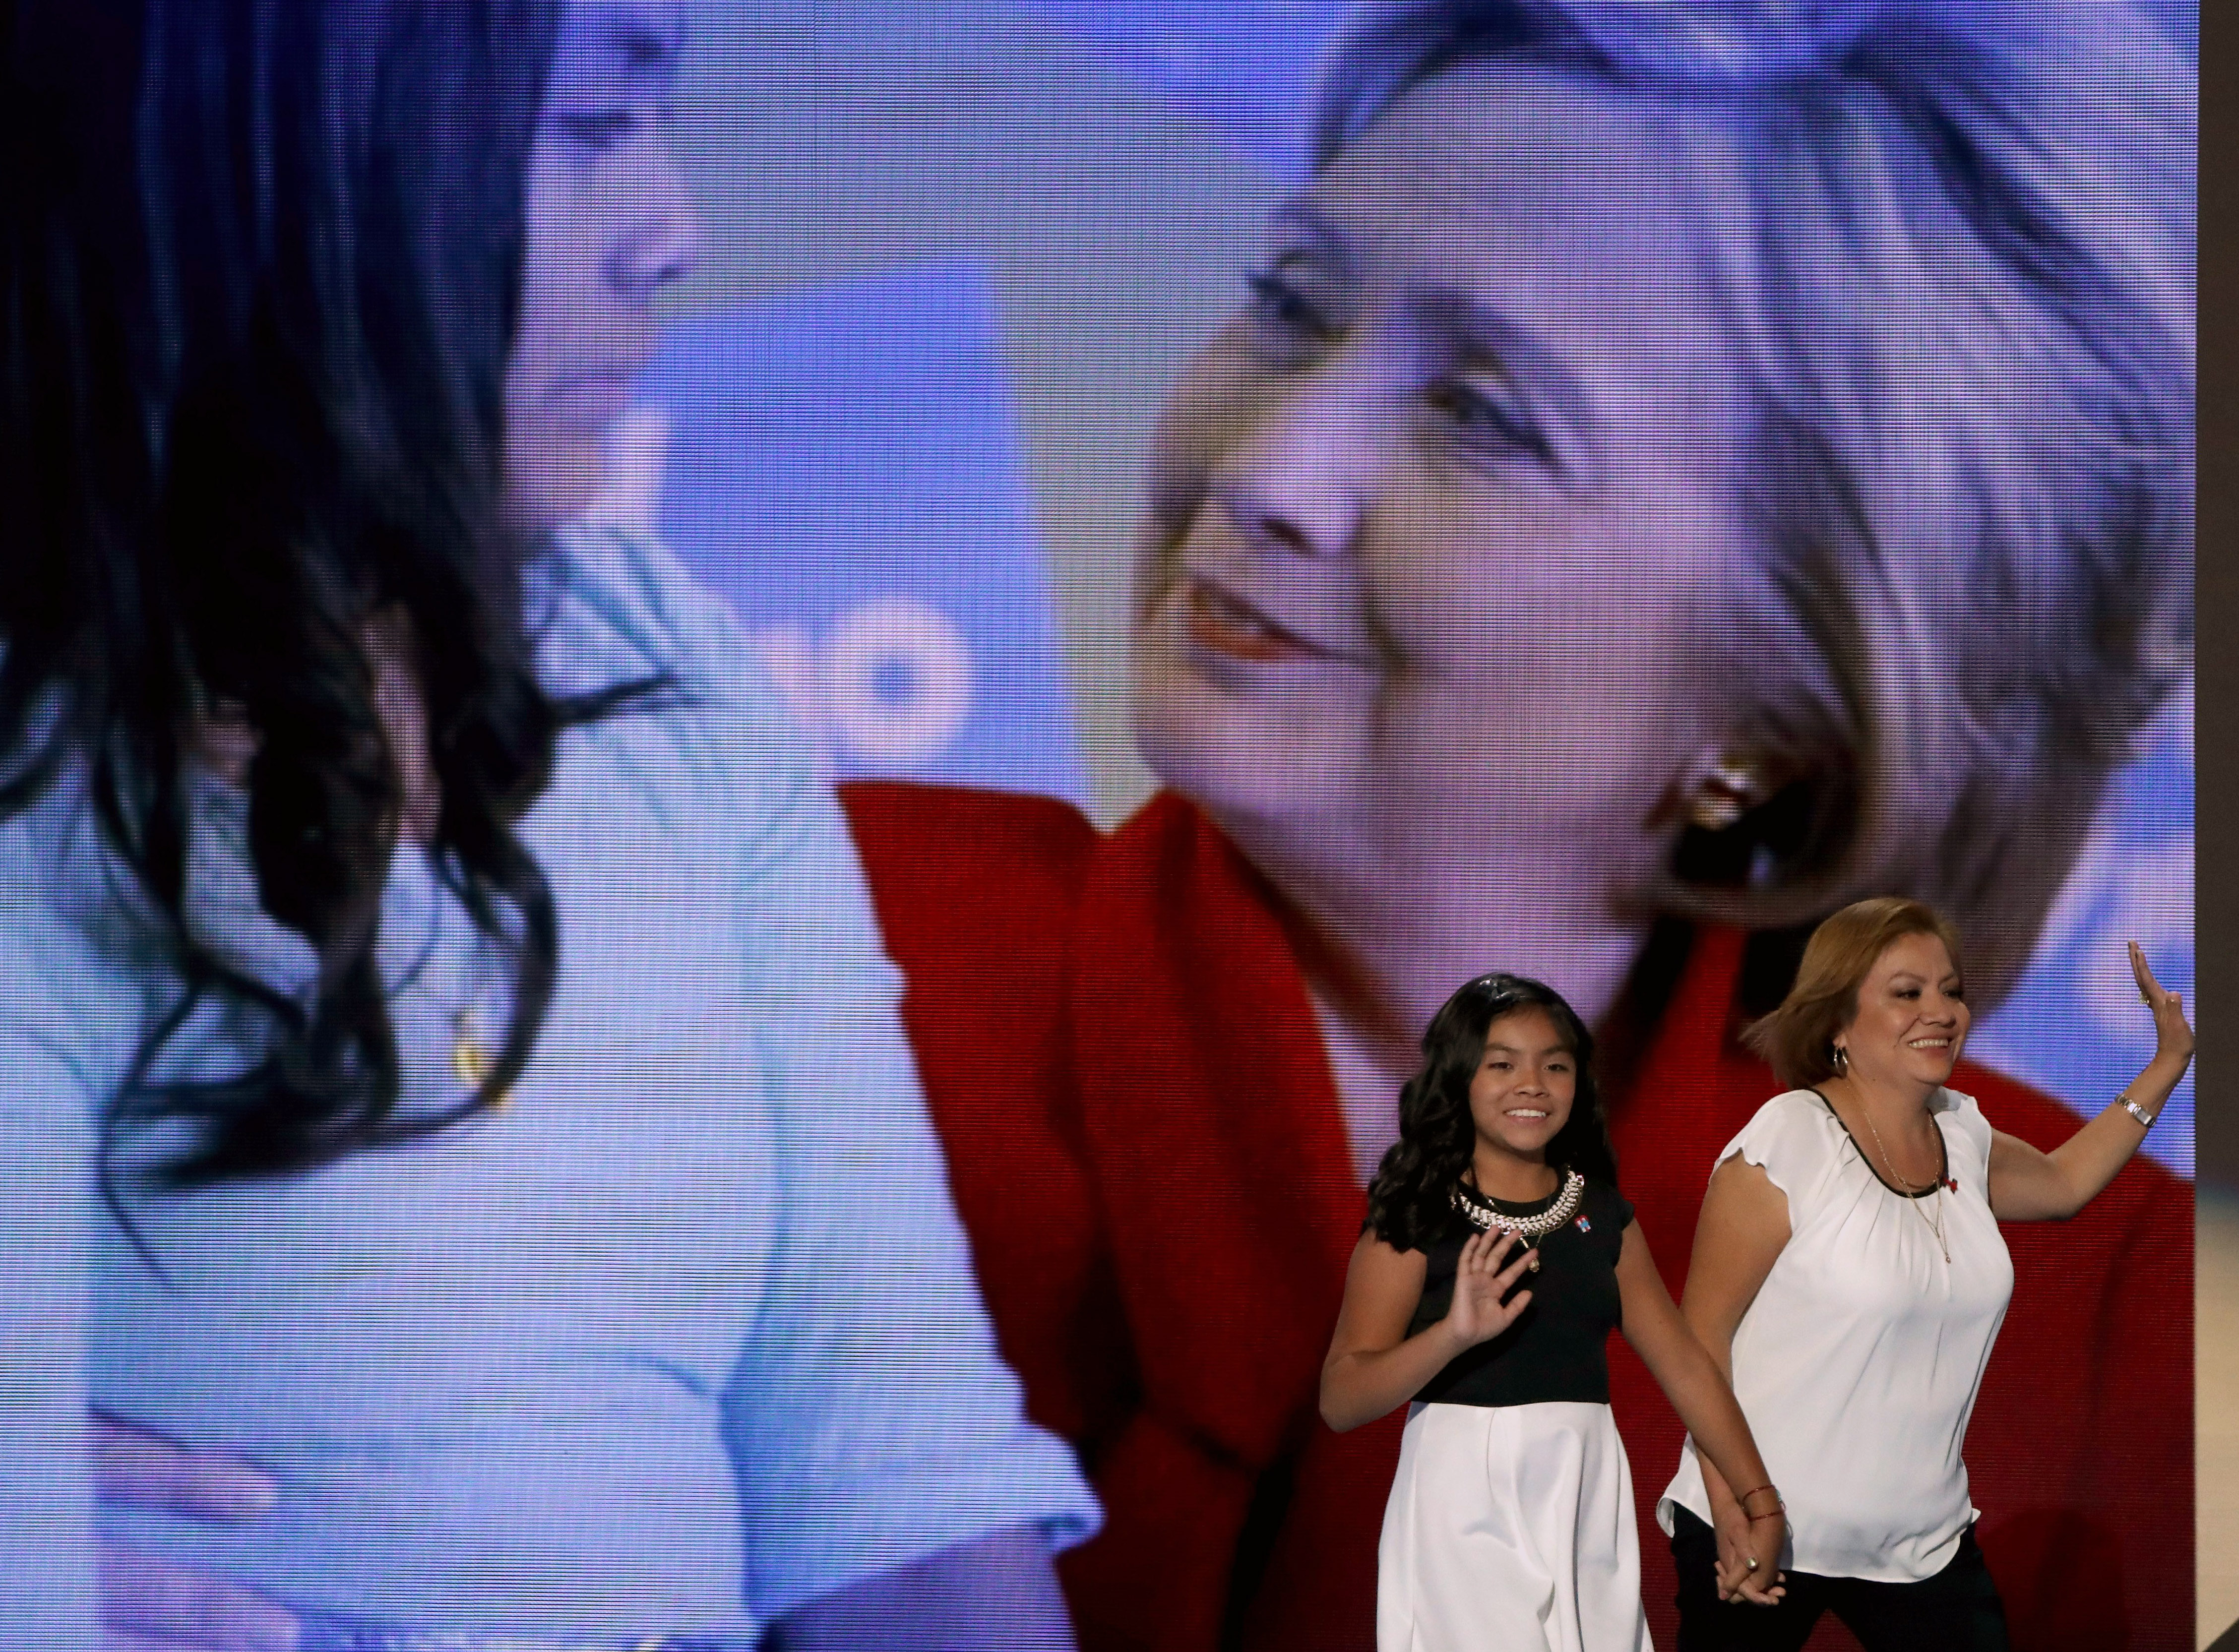 Karla Ortiz, 11, and her mother, Francisca Ortiz, walk out on stage to deliver remarks on the first day of the Democratic National Convention at the Wells Fargo Center, July 25, 2016 in Philadelphia.